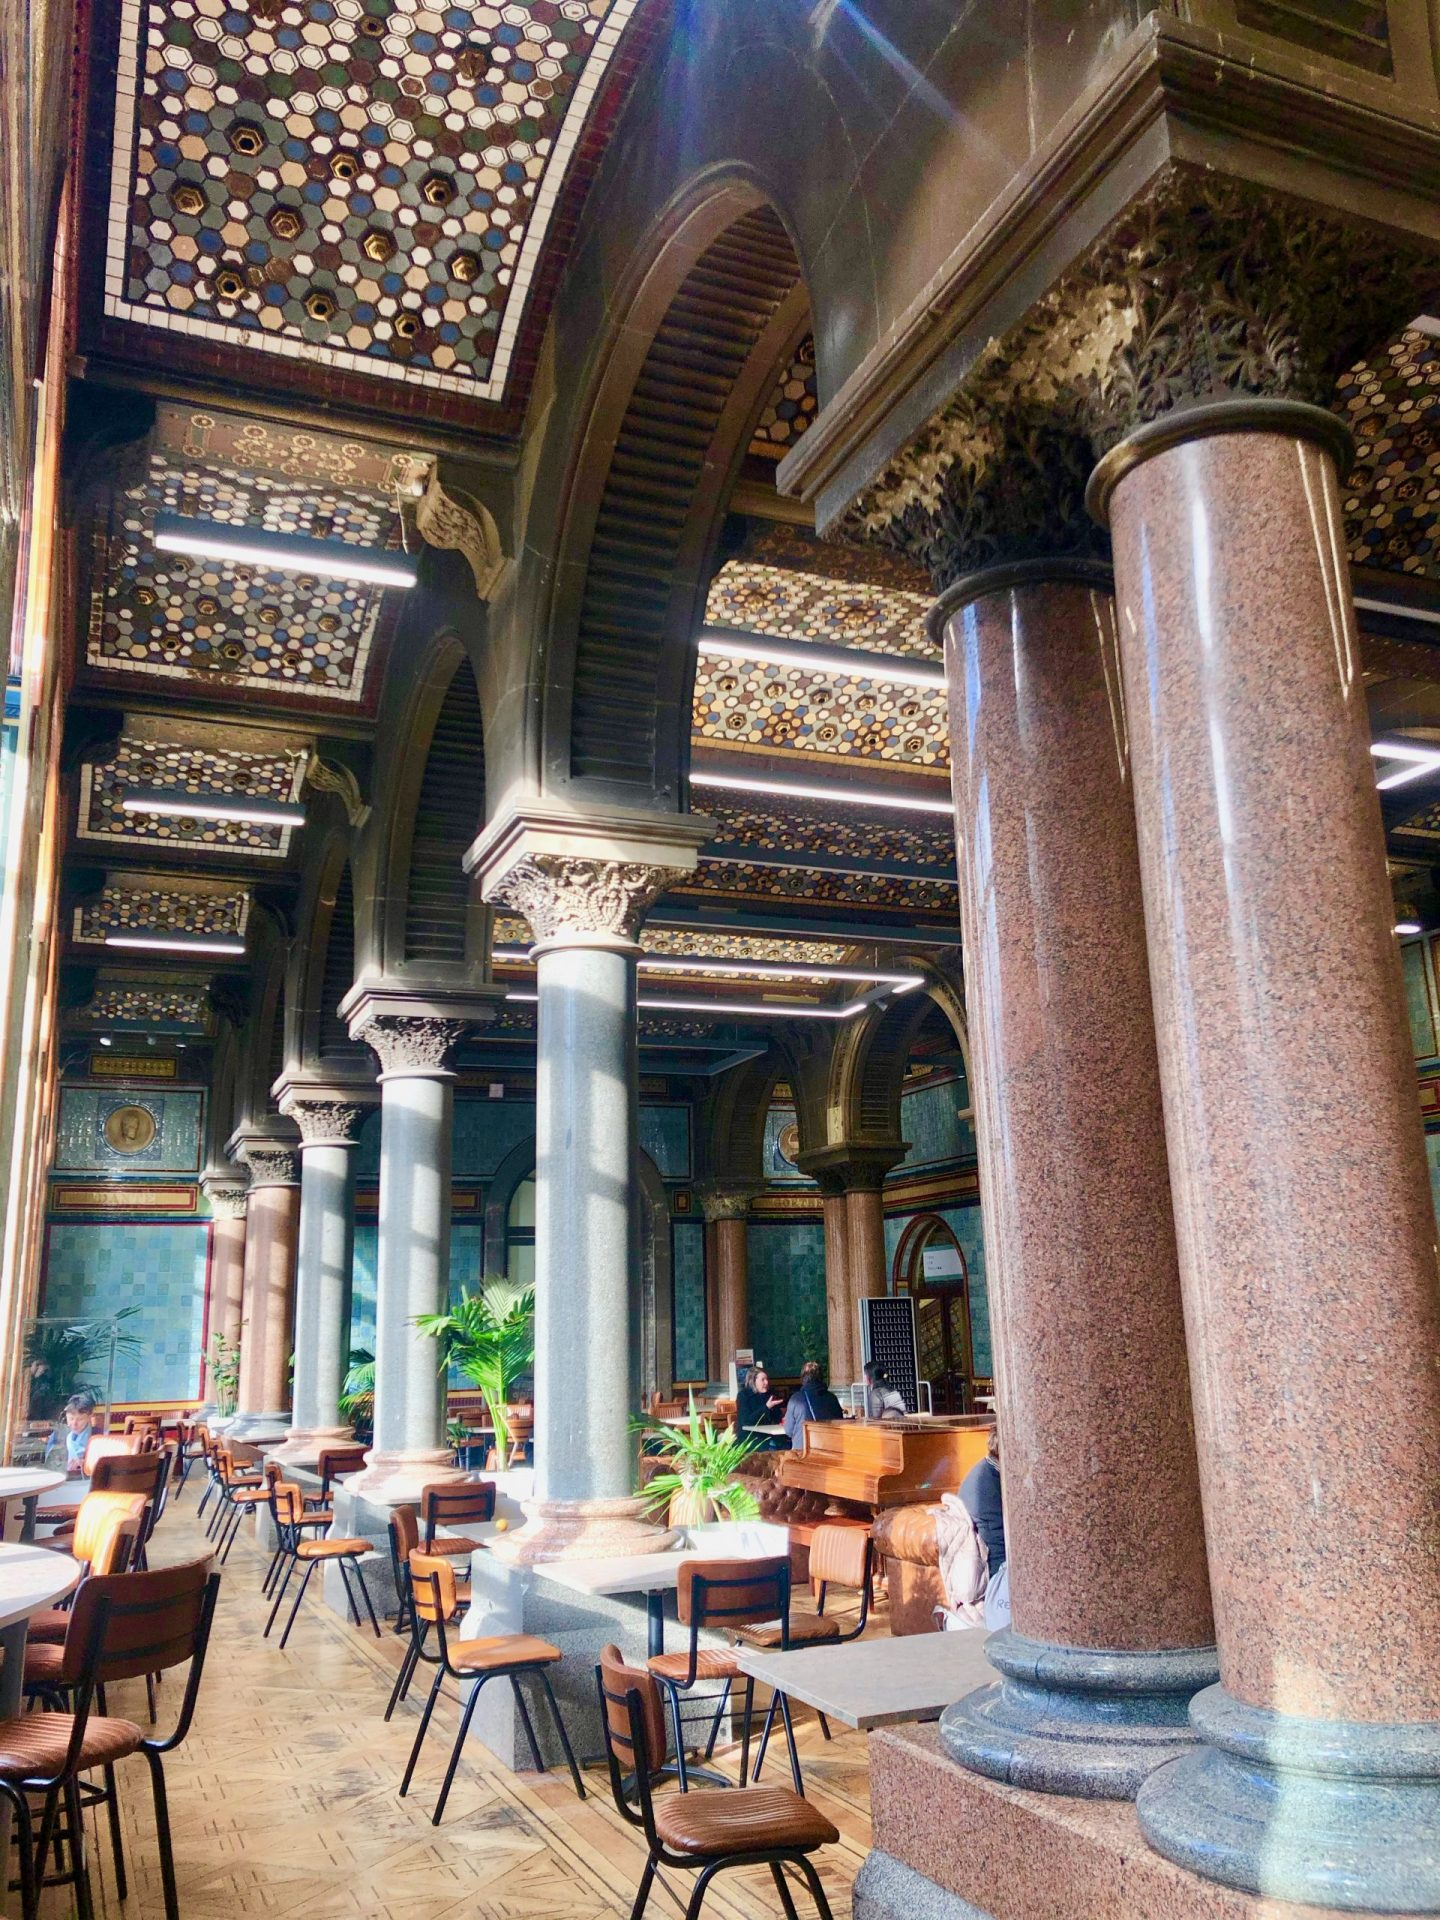 Coffee Shops Leeds - Tiled Hall with columns, a tiled ceiling and plenty of seating